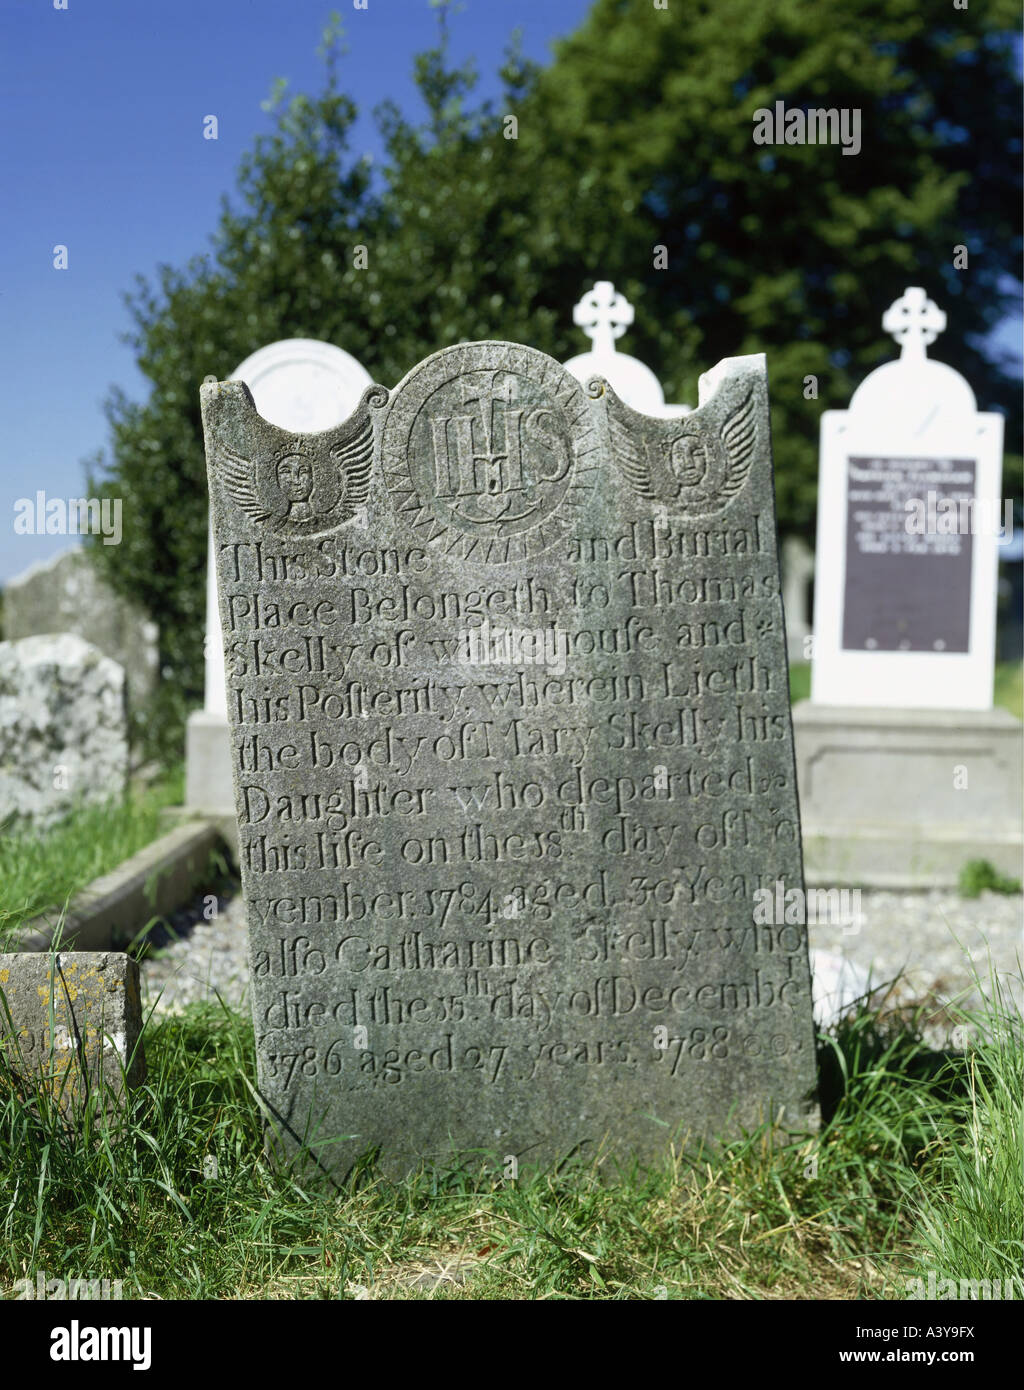 travel / geography, Ireland, Monasterboice, monuments, tombstone, inscription, 1788, Additional-Rights-Clearances - Stock Image